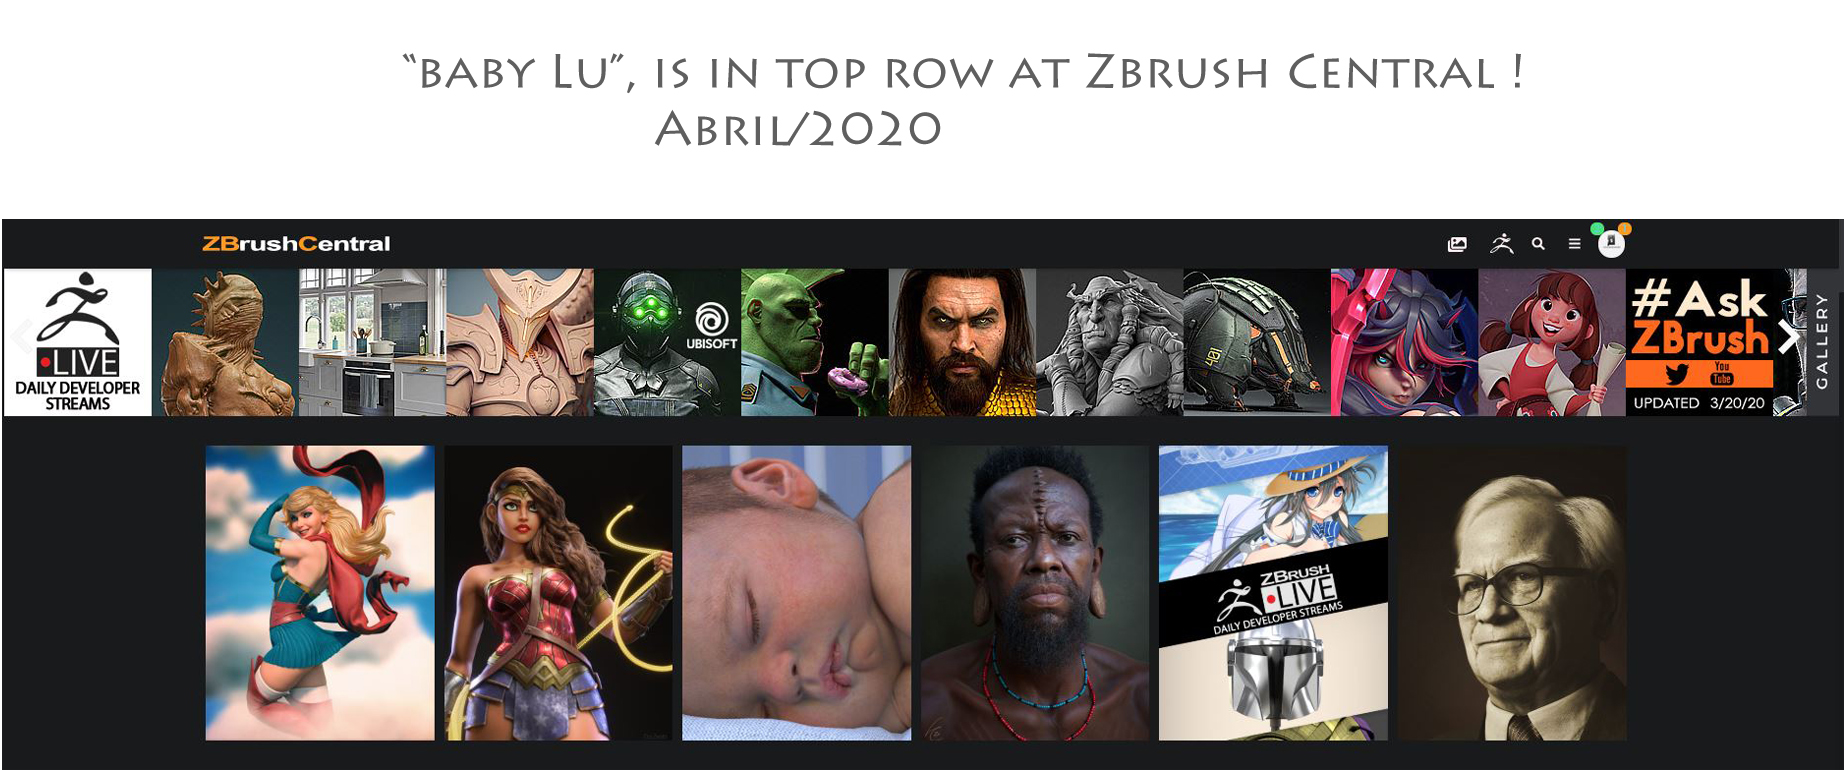 ZBrush_Central